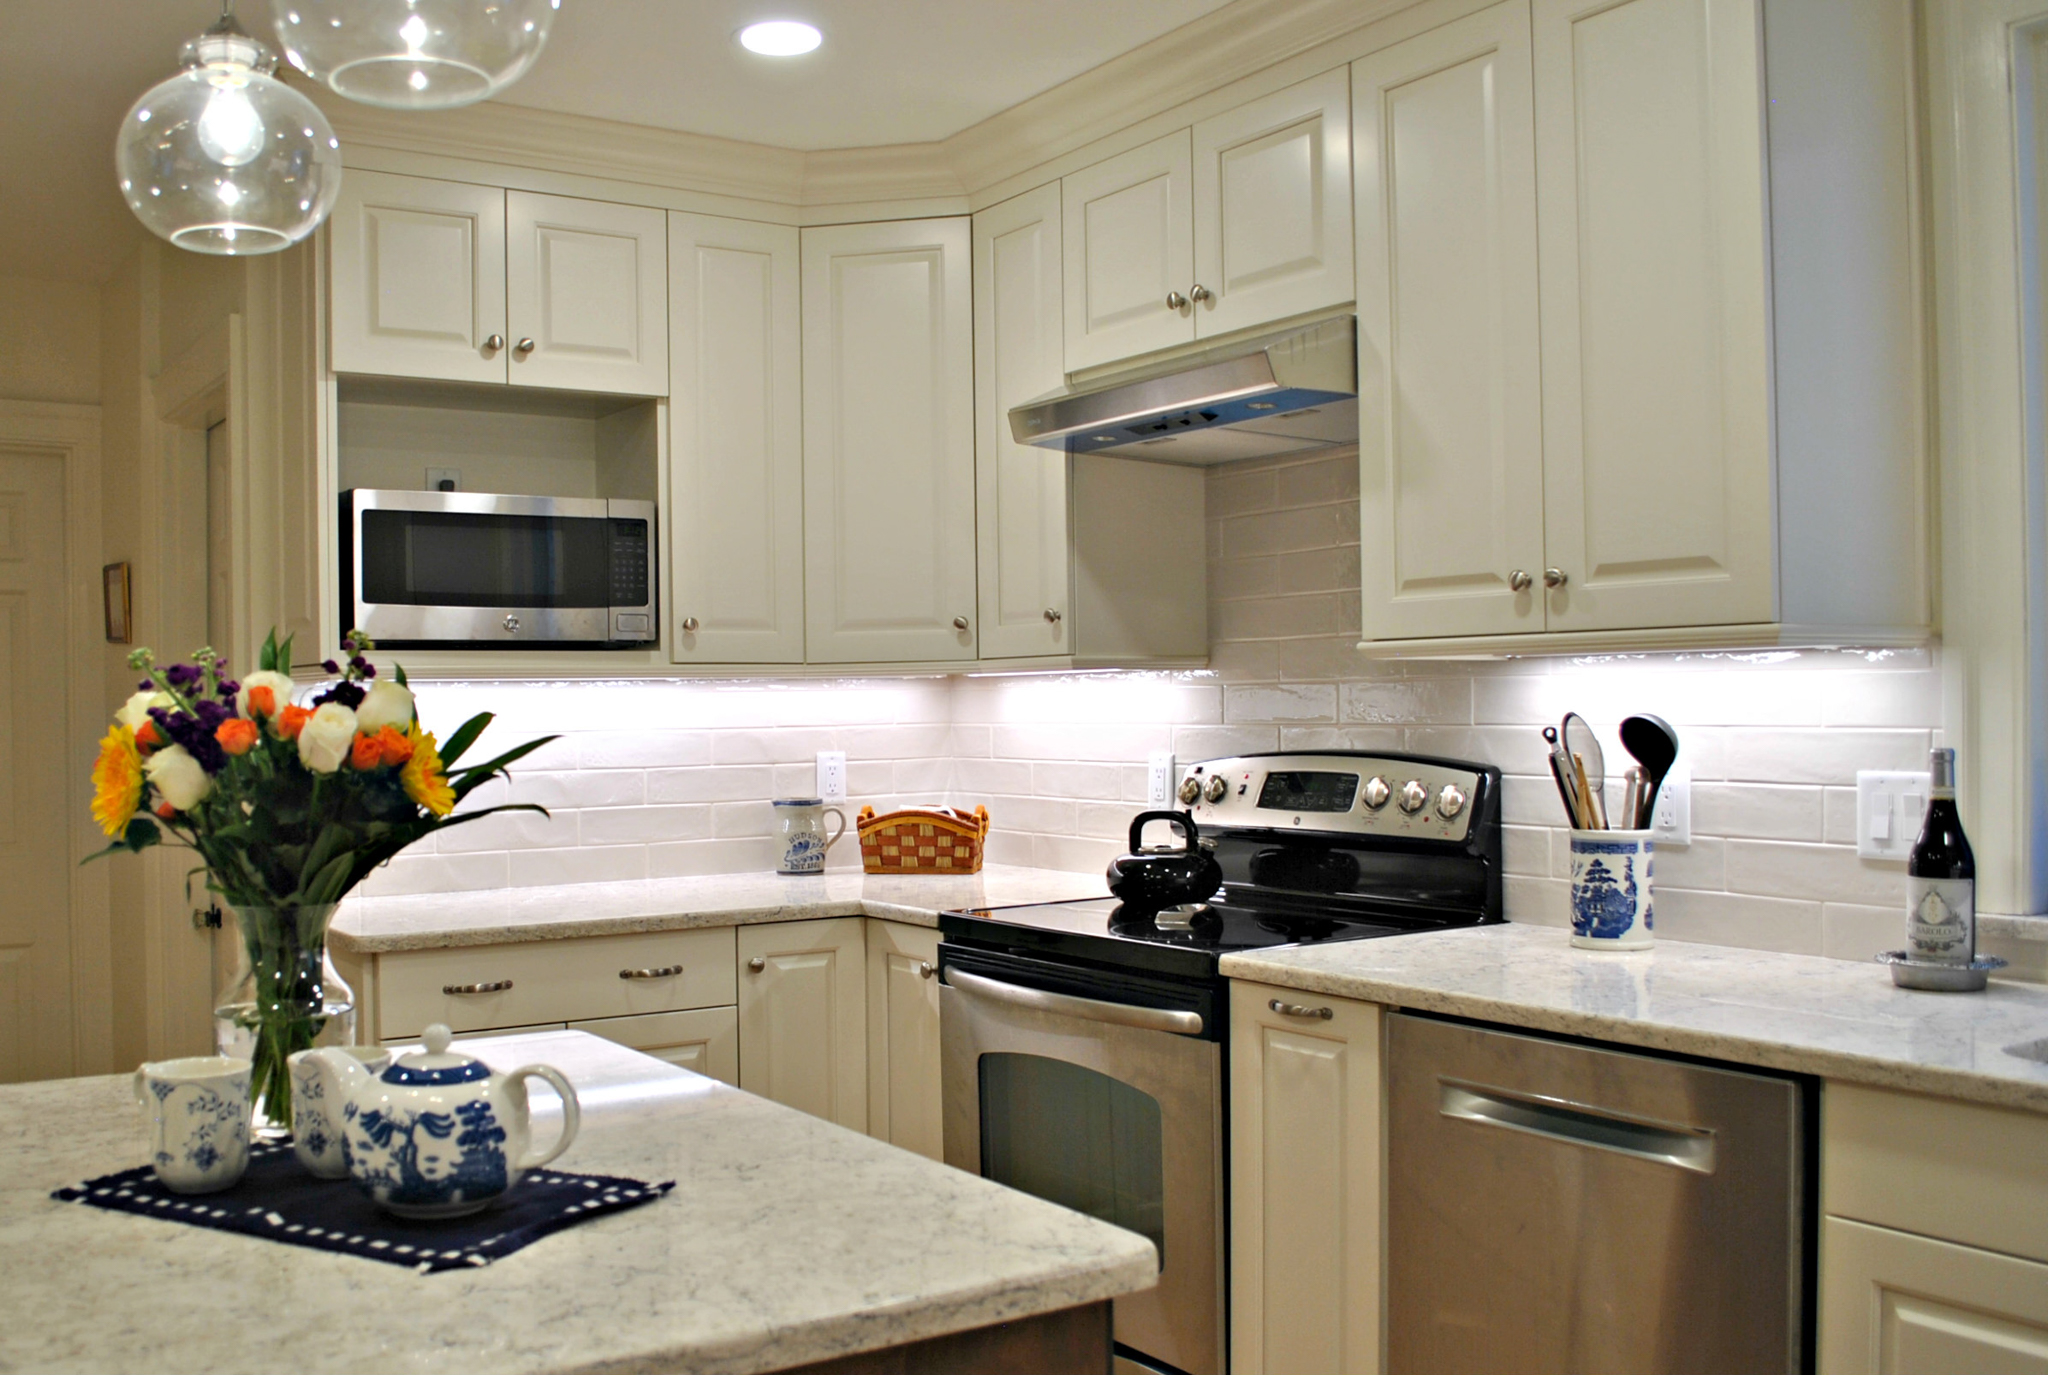 Charmant 50 Year Old Kitchen In Hudson, MA Gets A Facelift